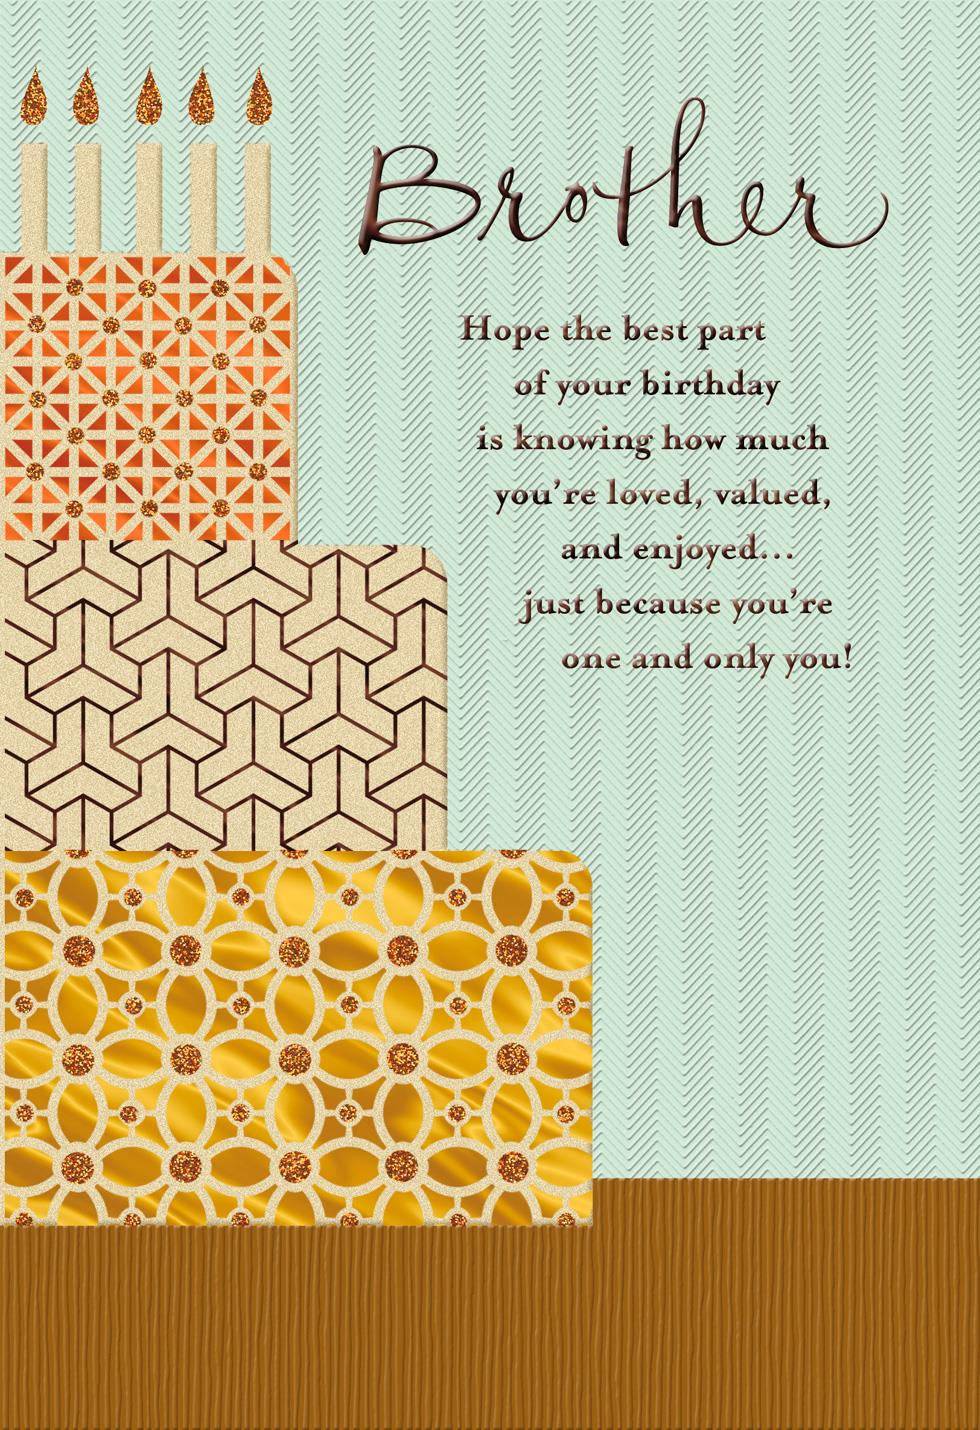 You Re A Blessing Religious Birthday Card For Brother Greeting Cards Hallmark